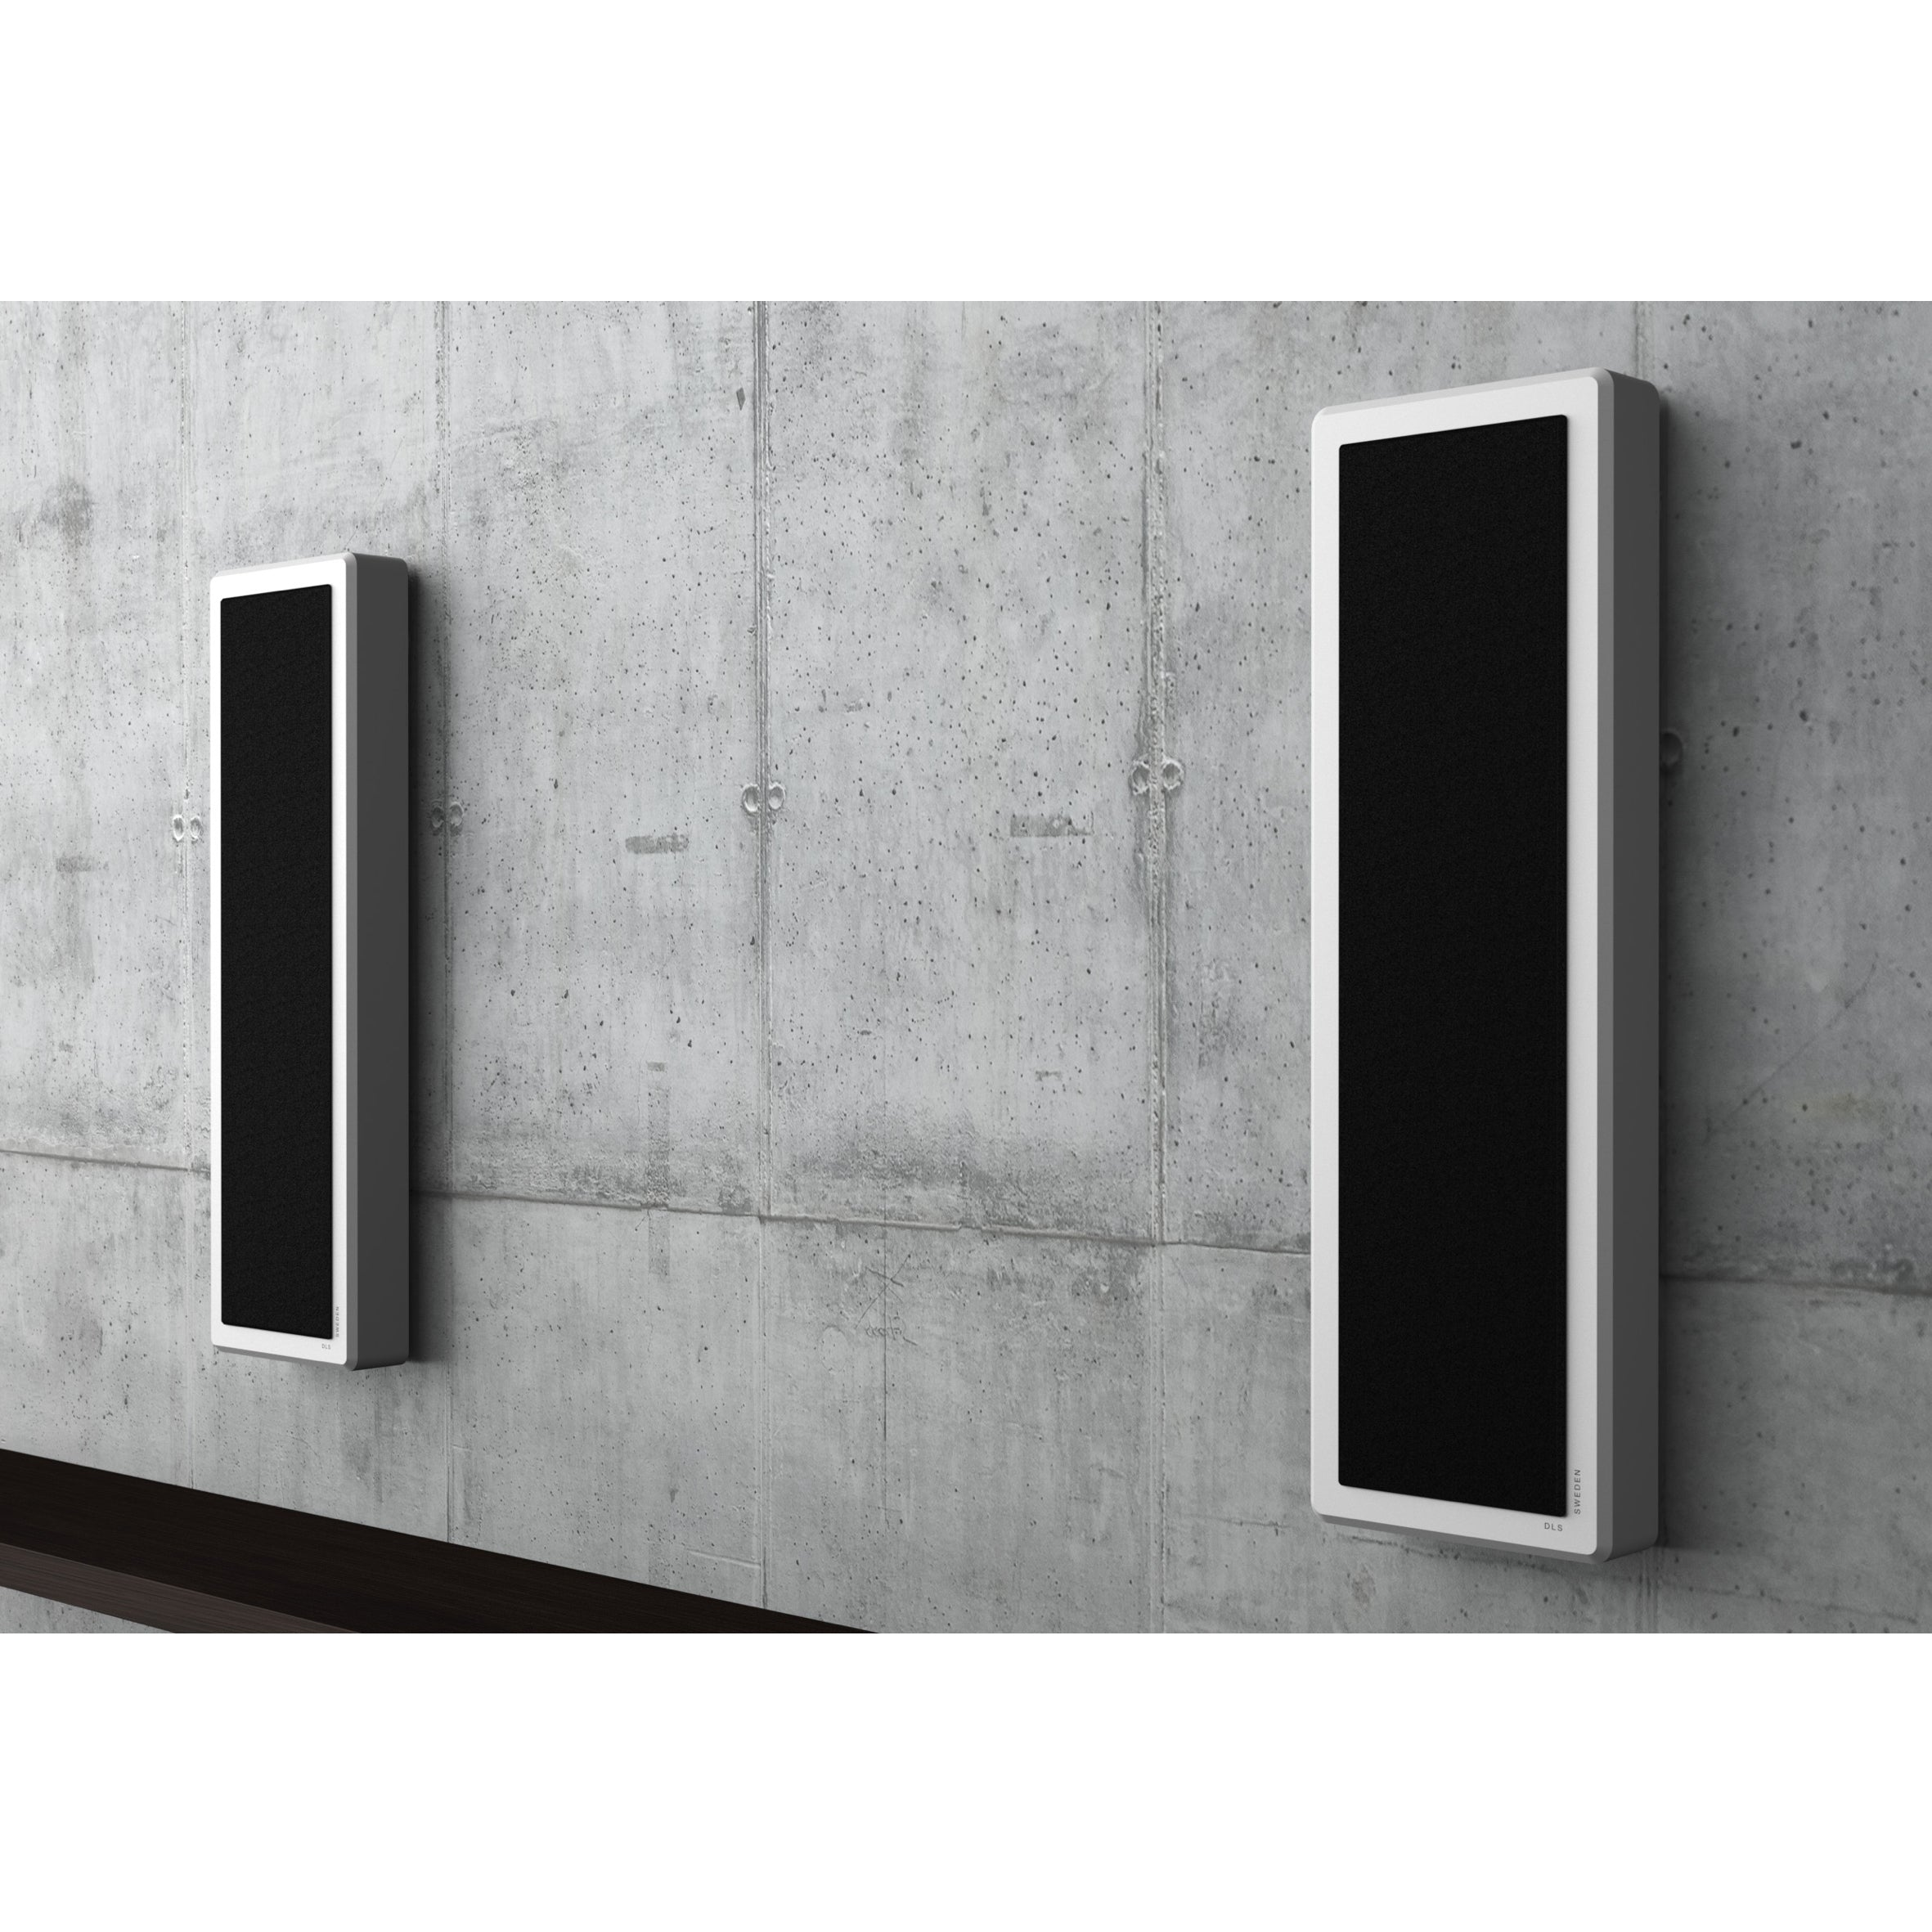 DLS Flatbox M-Two On-wall speaker - Pair - AVStore